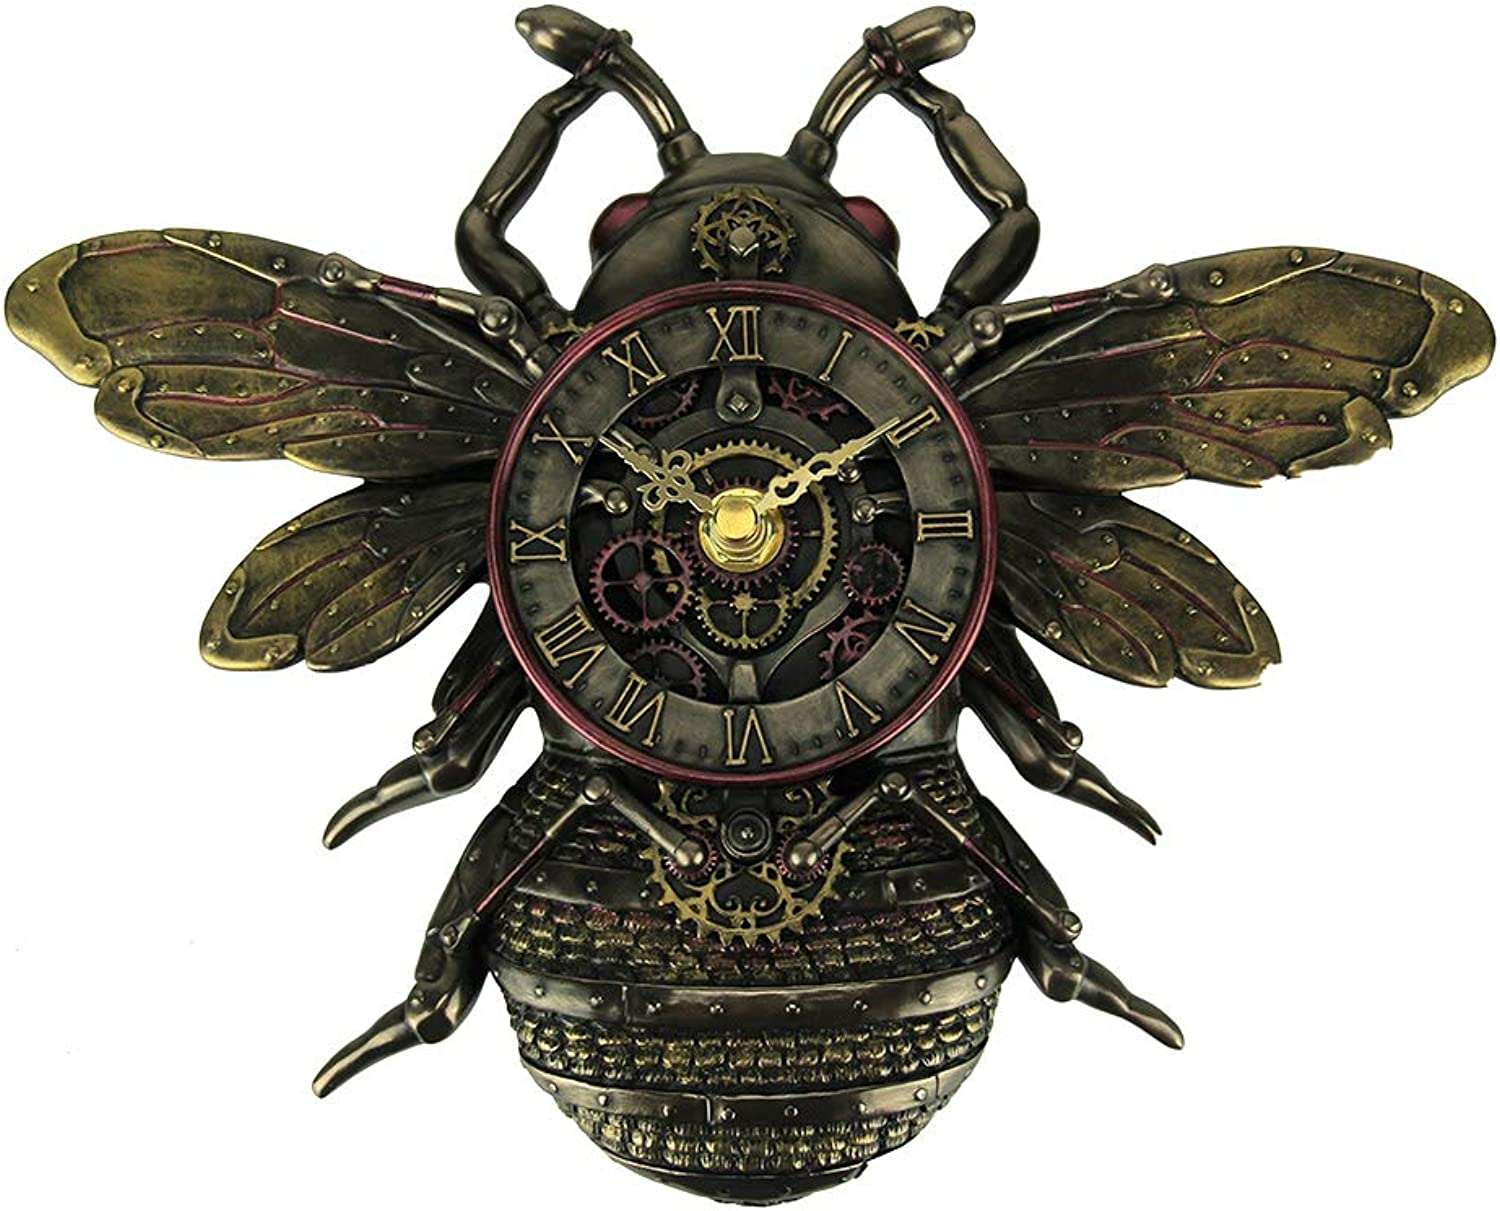 Veronese Design Resin Wall Clocks Steampunk Style Bronze Finish Honeybee Wall Clock 9.75 X 7.25 X 1.38 Inches Bronze